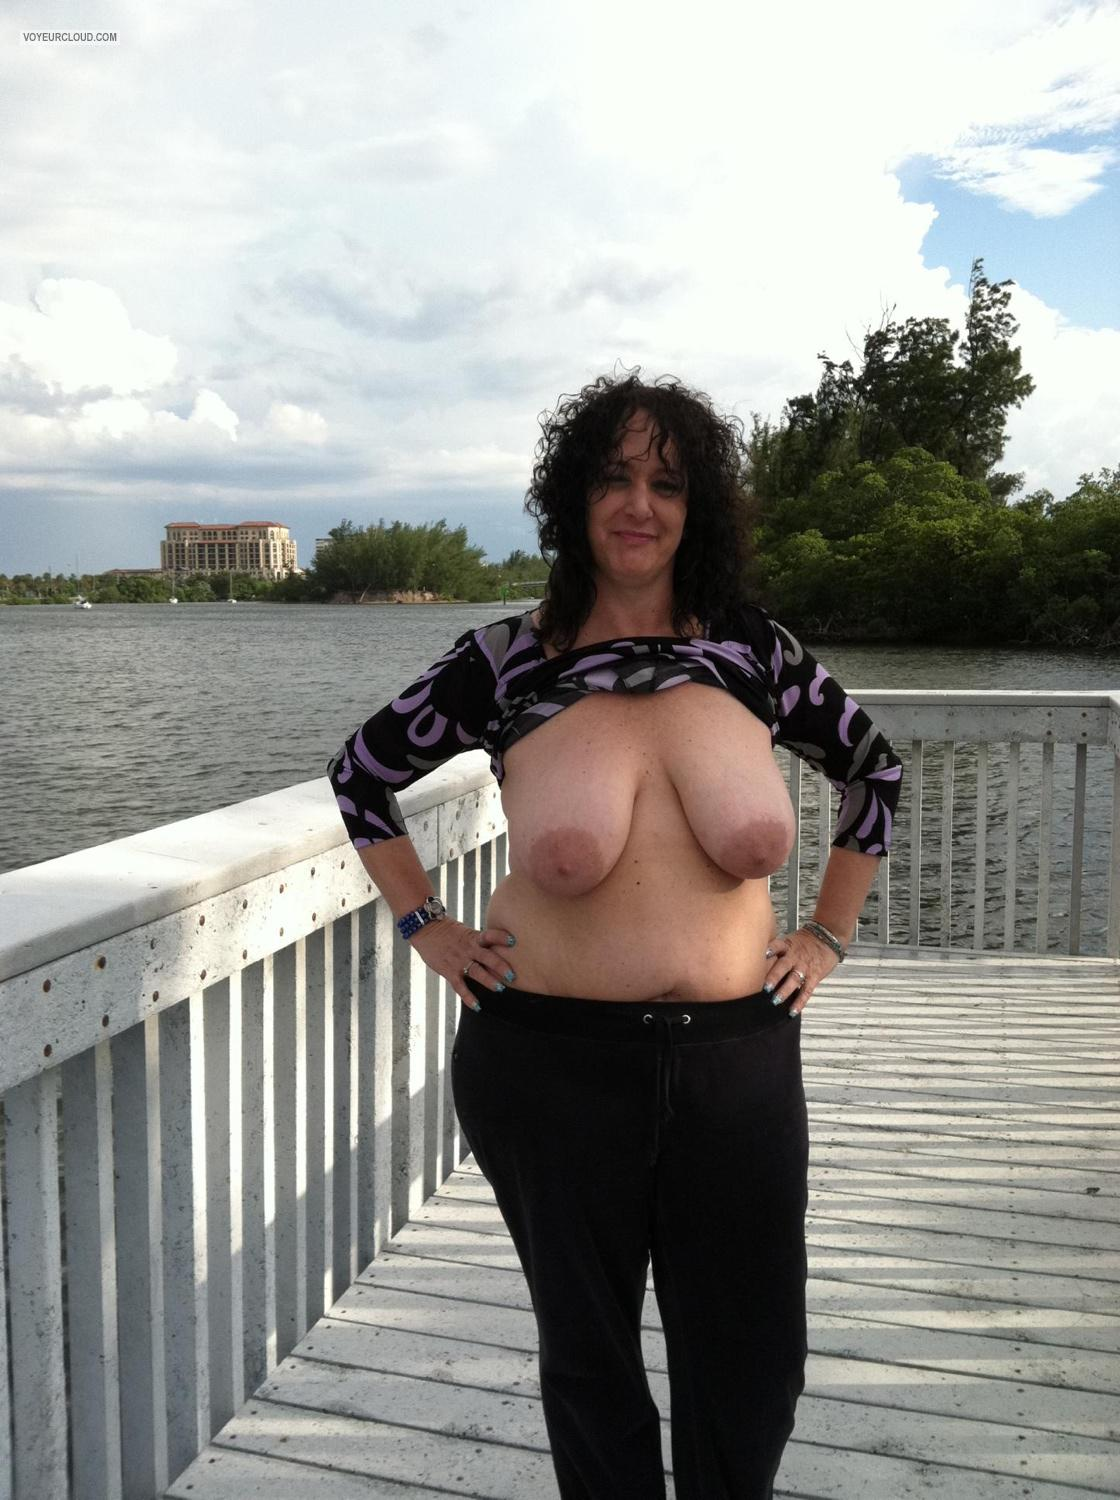 Tit Flash: Very Big Tits By IPhone - Topless Lori from United States